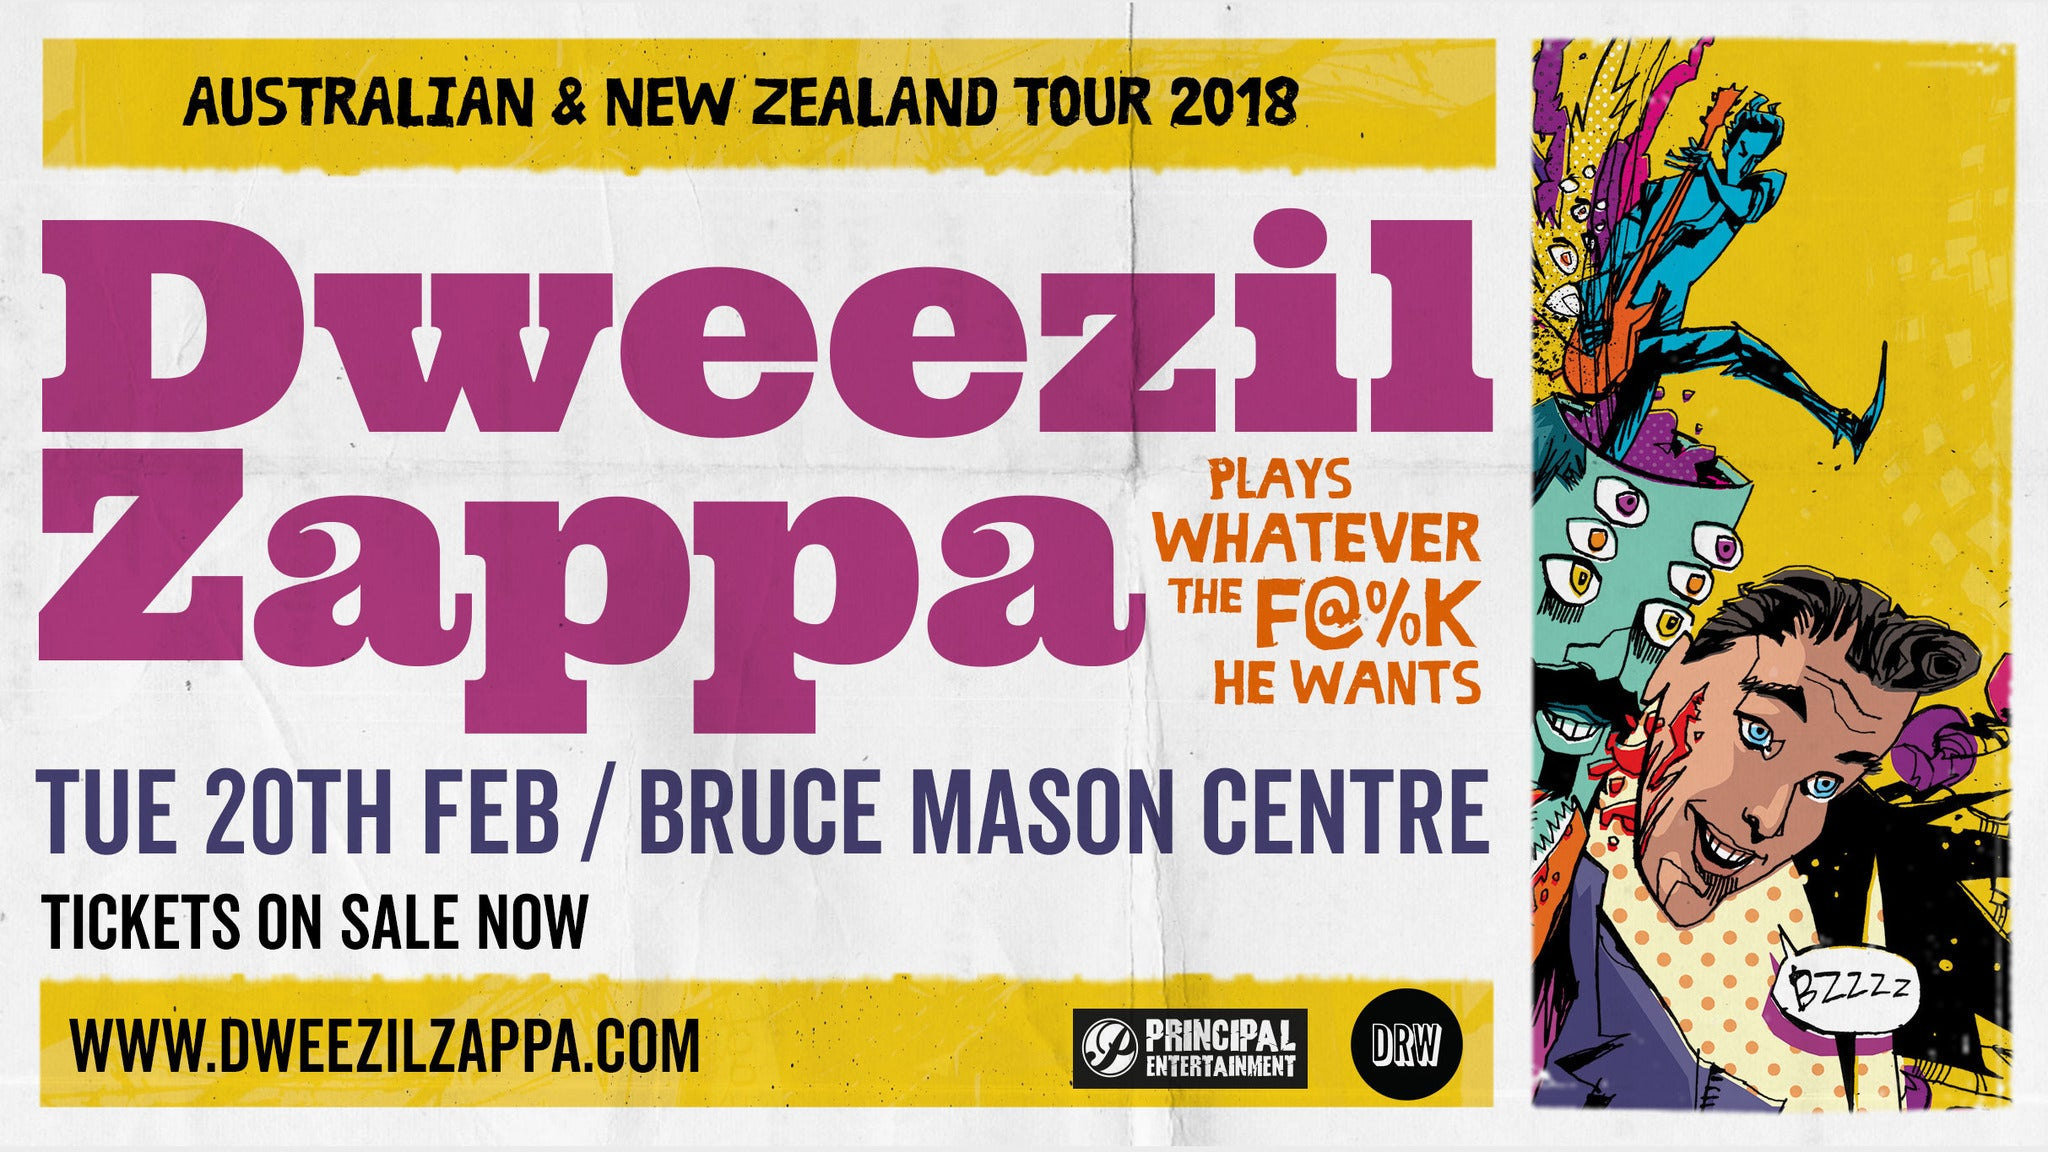 Dweezil Zappa Choice Cuts World Tour 2018 at The Queen